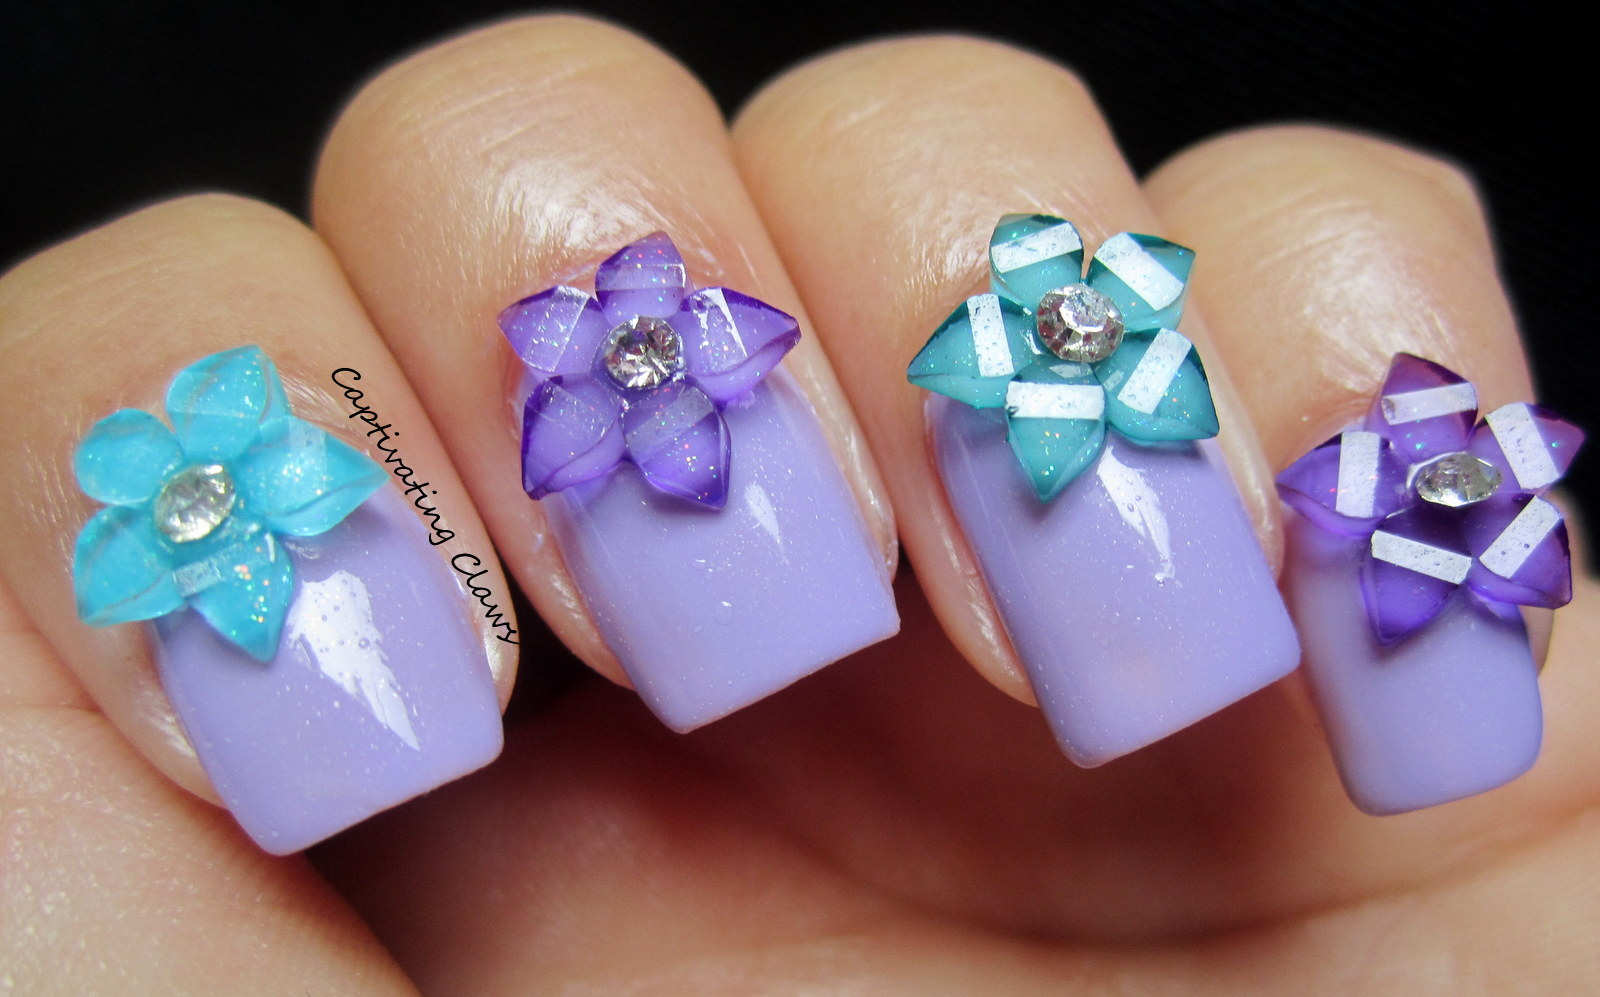 Captivating Claws 3D Nail Art With Flowers And Bows From Born Pretty